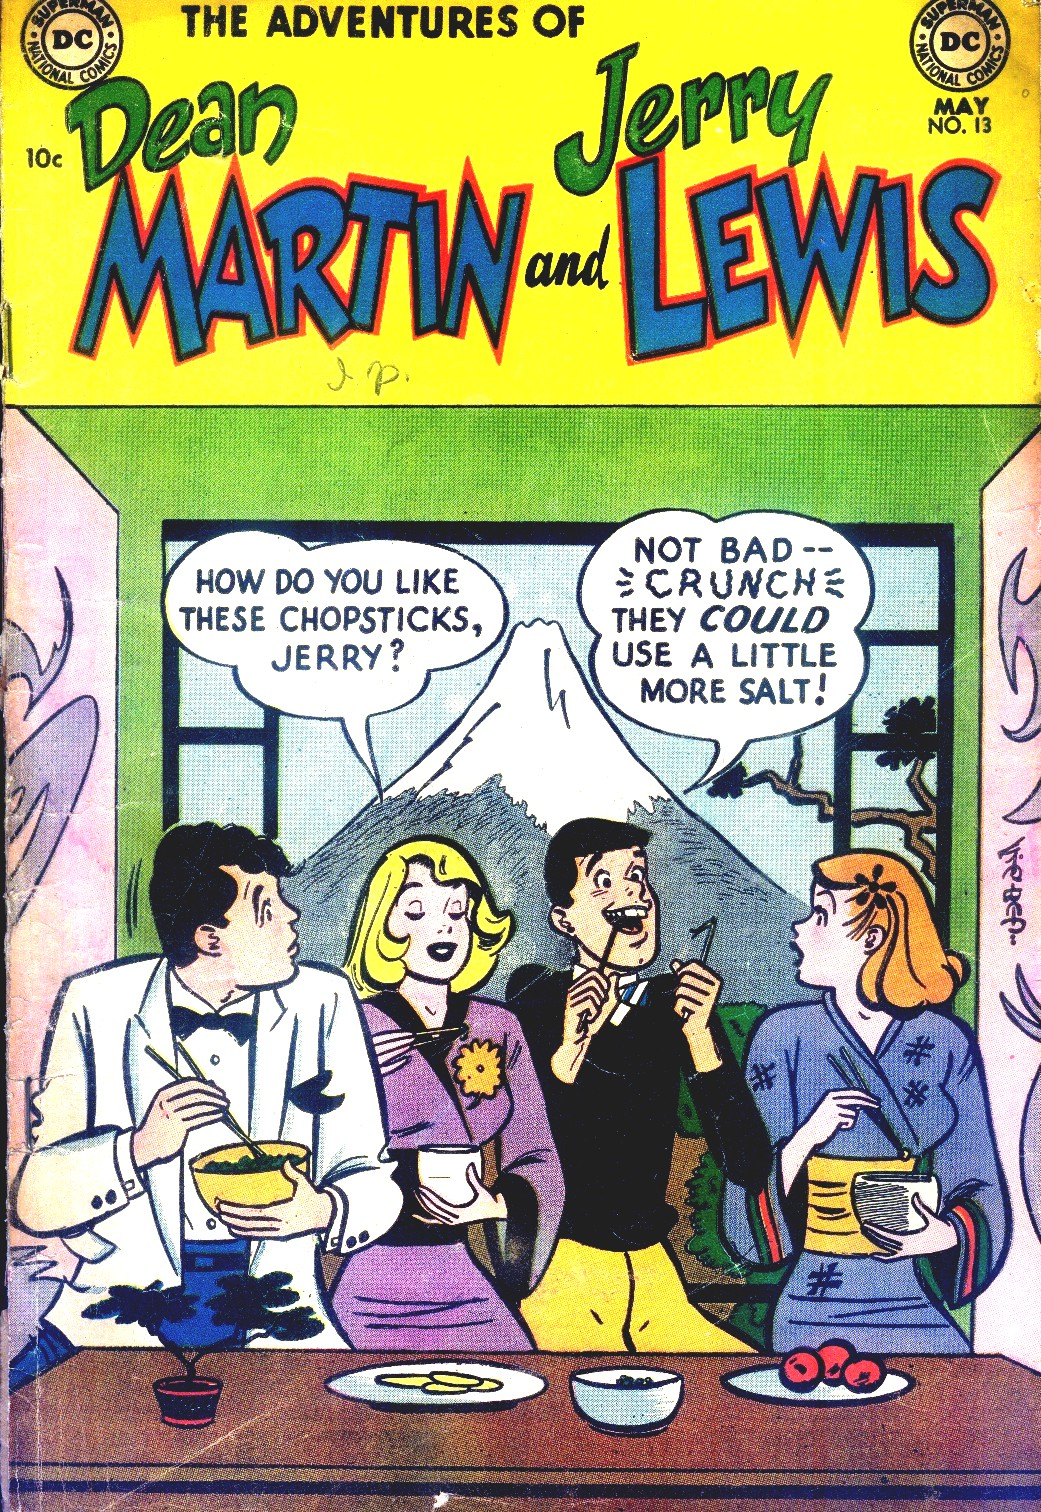 The Adventures of Dean Martin and Jerry Lewis 13 Page 1